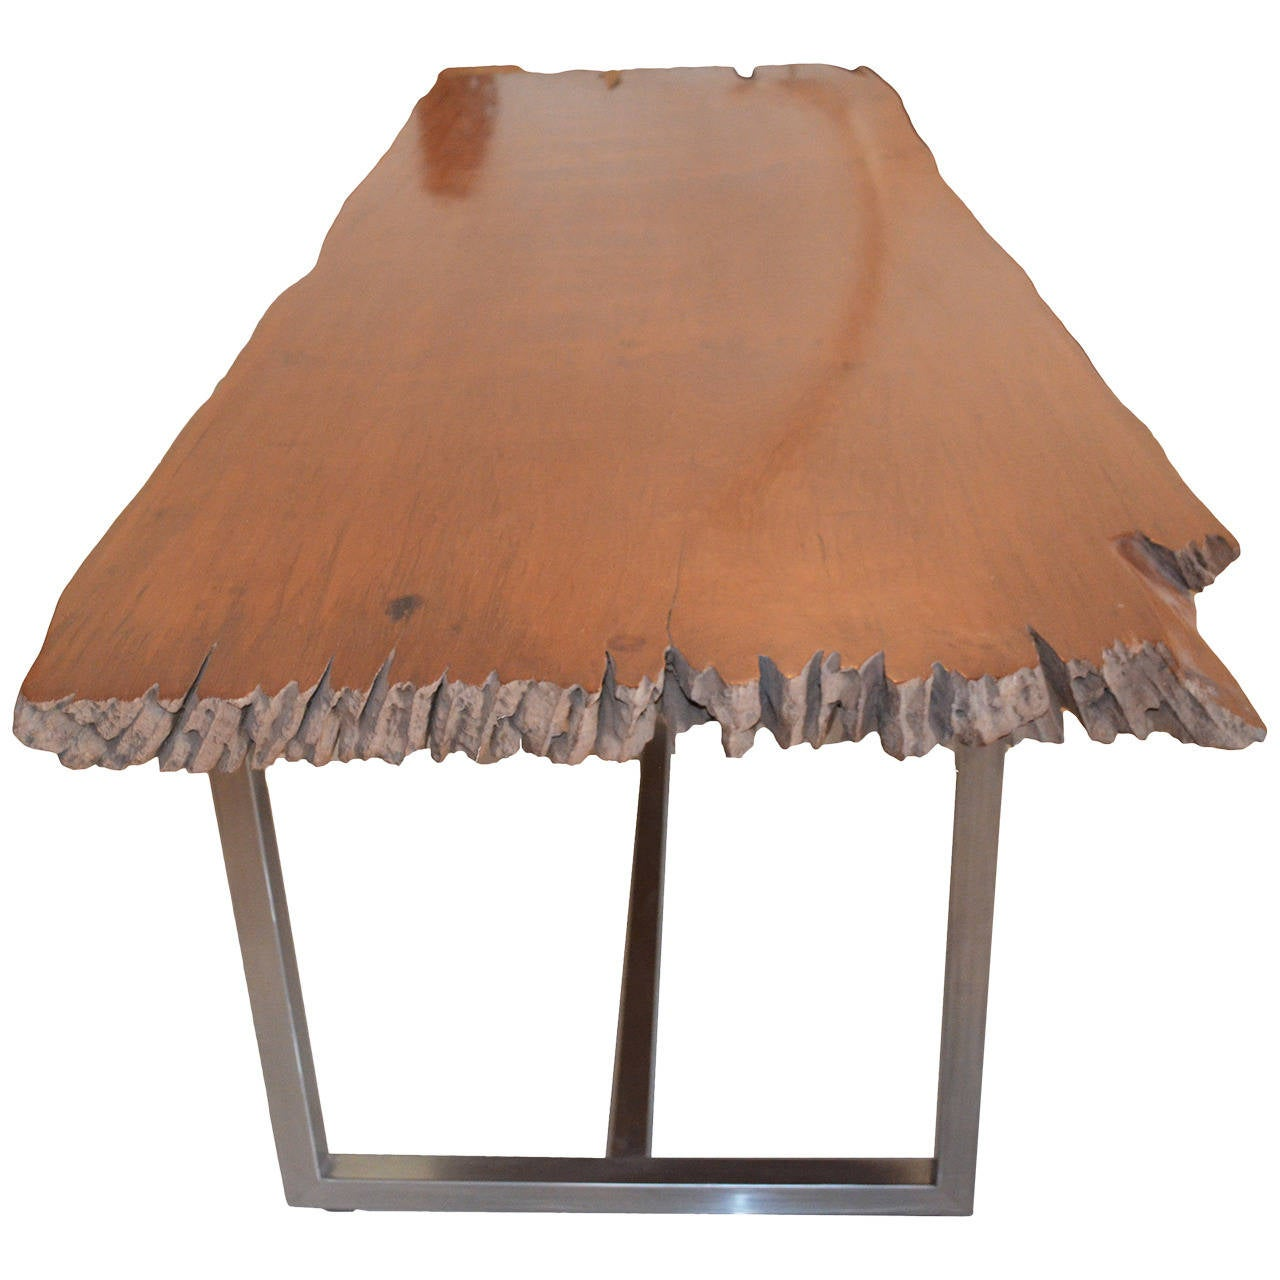 Andrianna Shamaris Live Edge Teak Wood Single Slab Dining Table For Sale